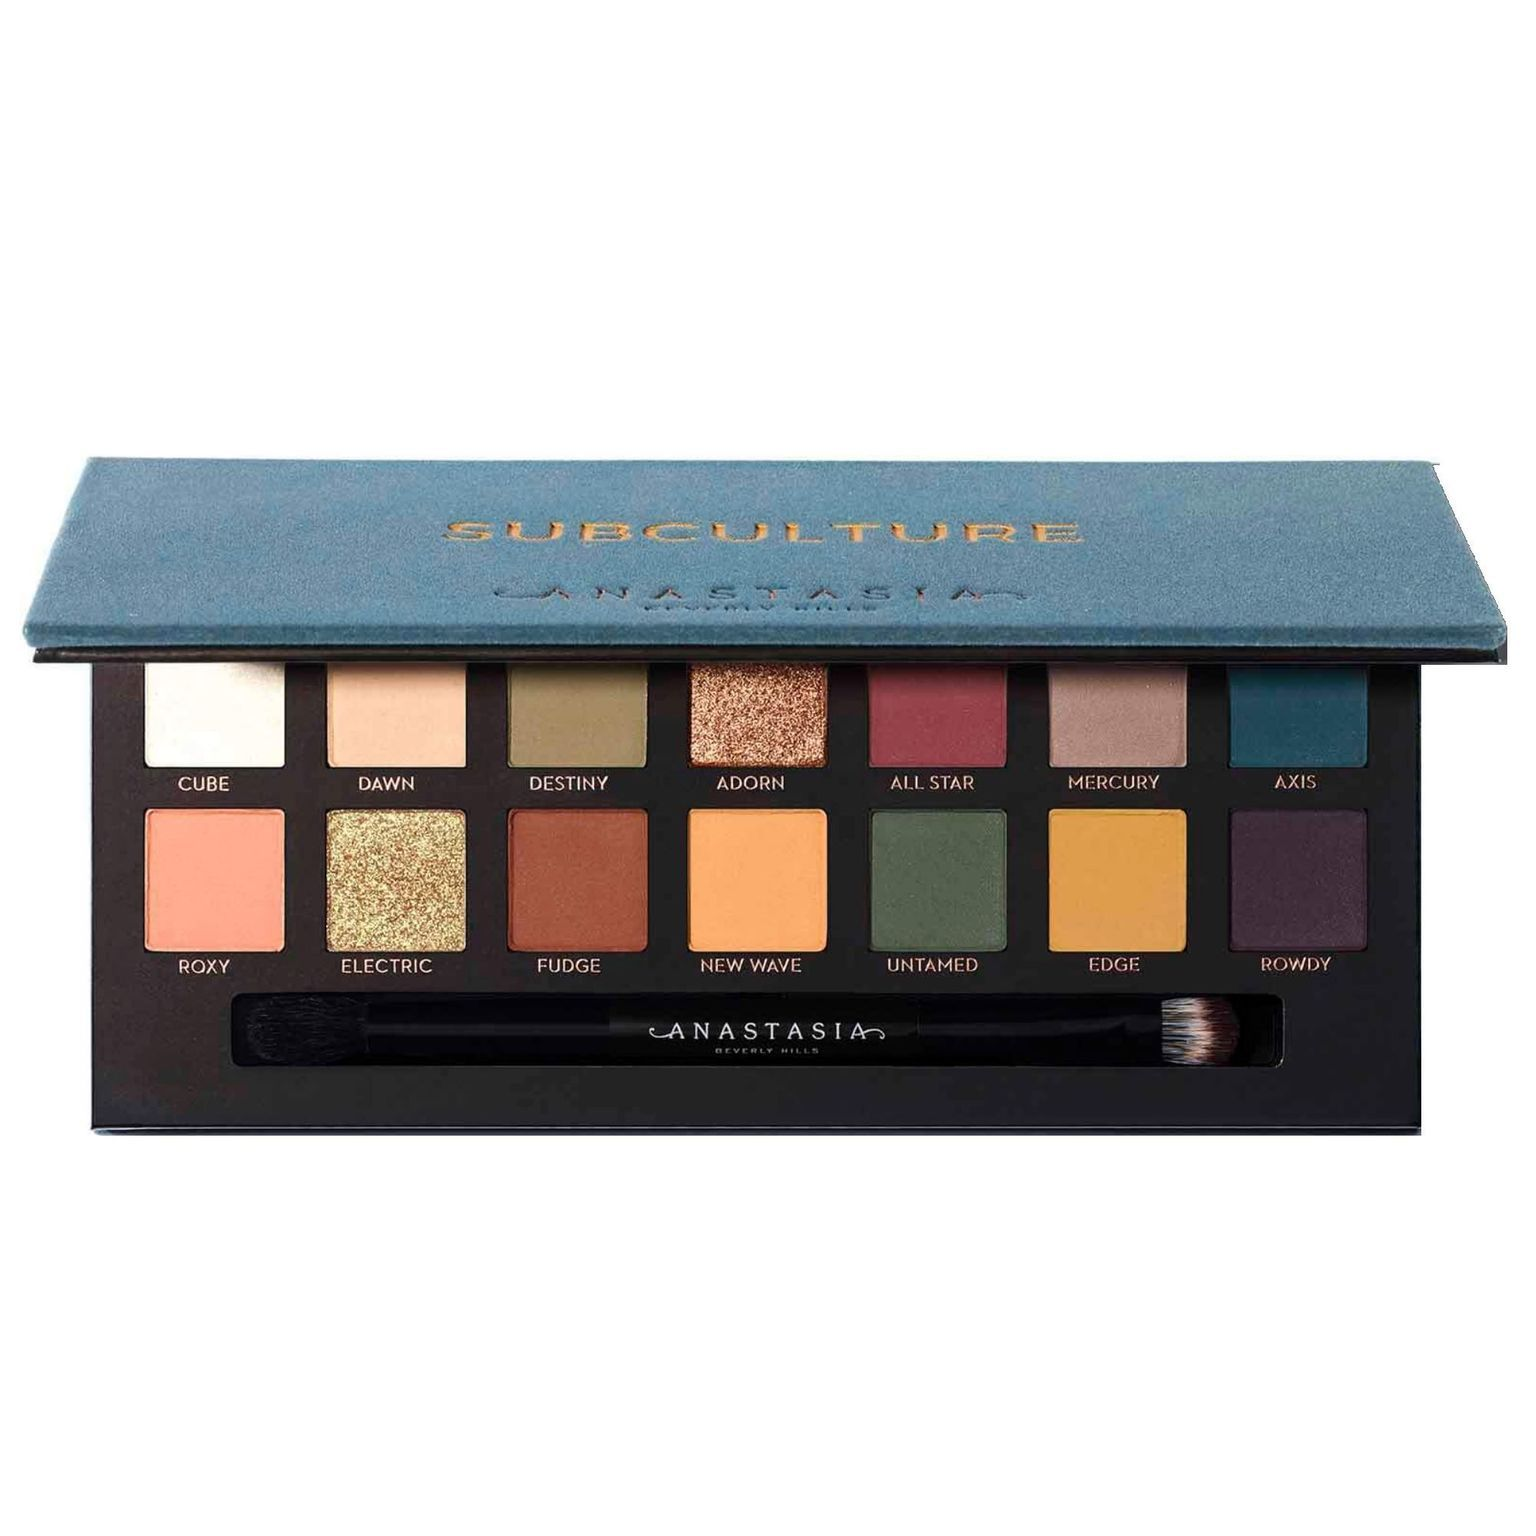 Subculture Eyeshadow Palette [DISCONTINUED]